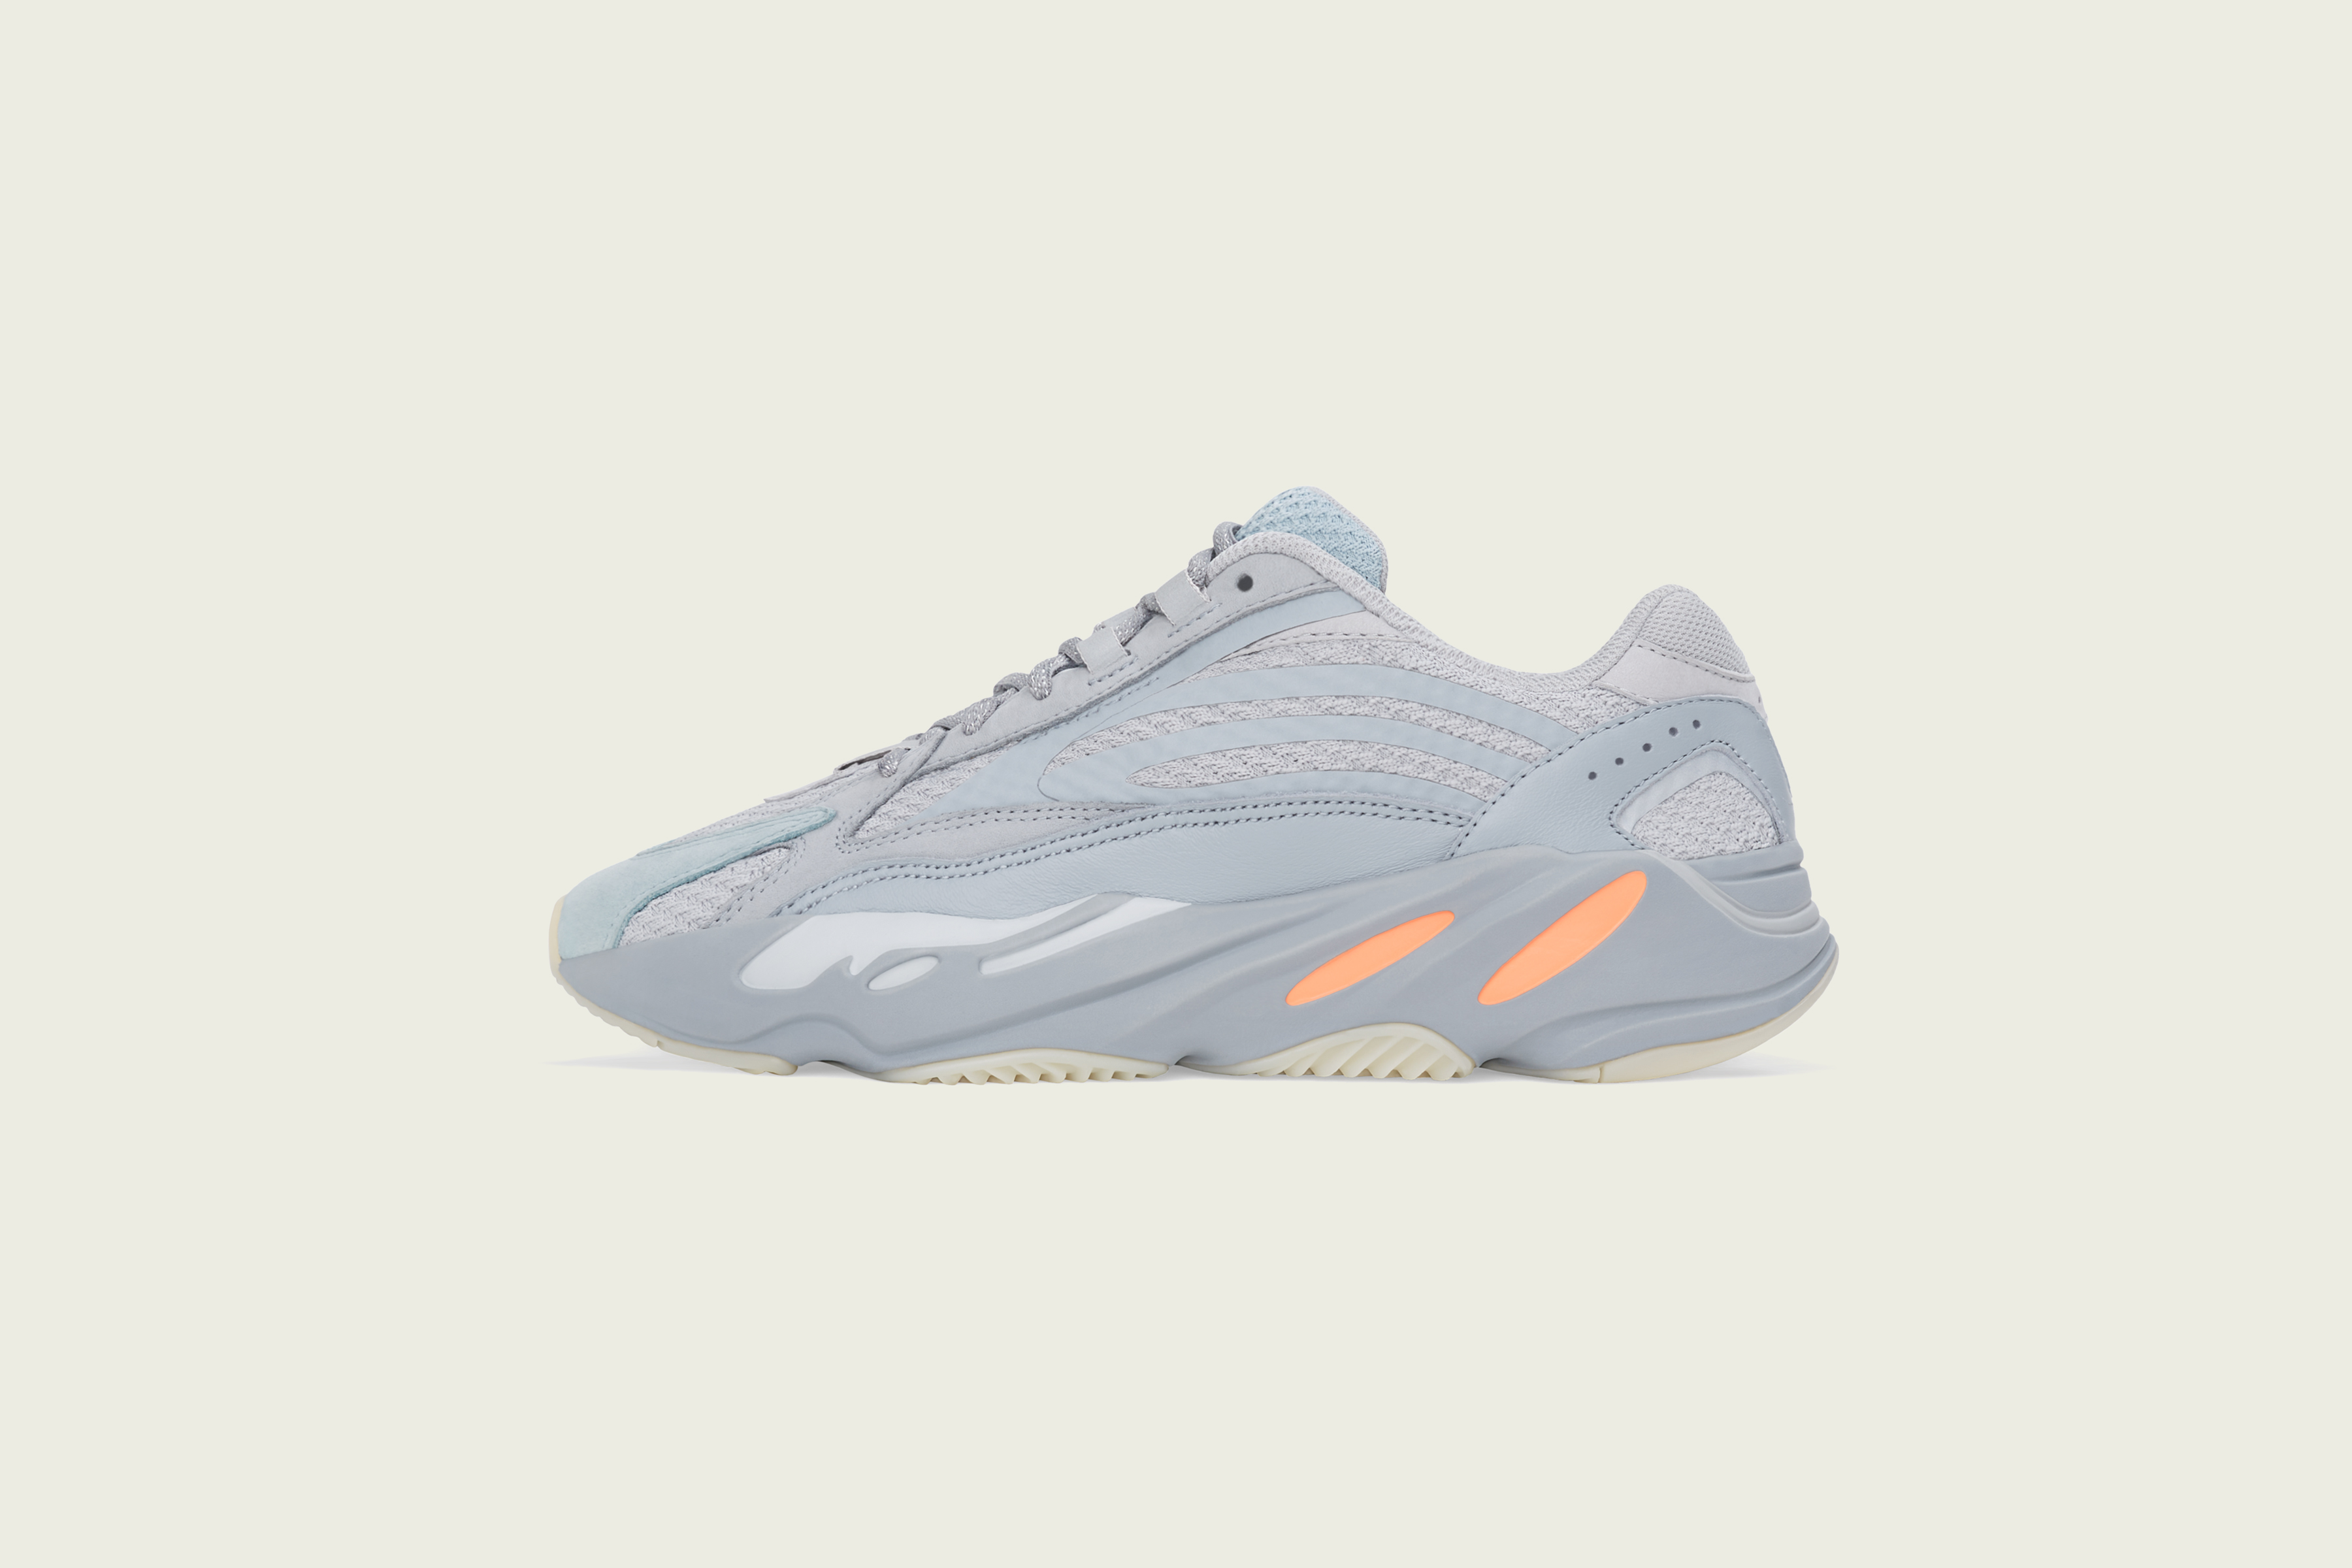 new style 8562a 602ad DONE - YEEZY BOOST 700 V2